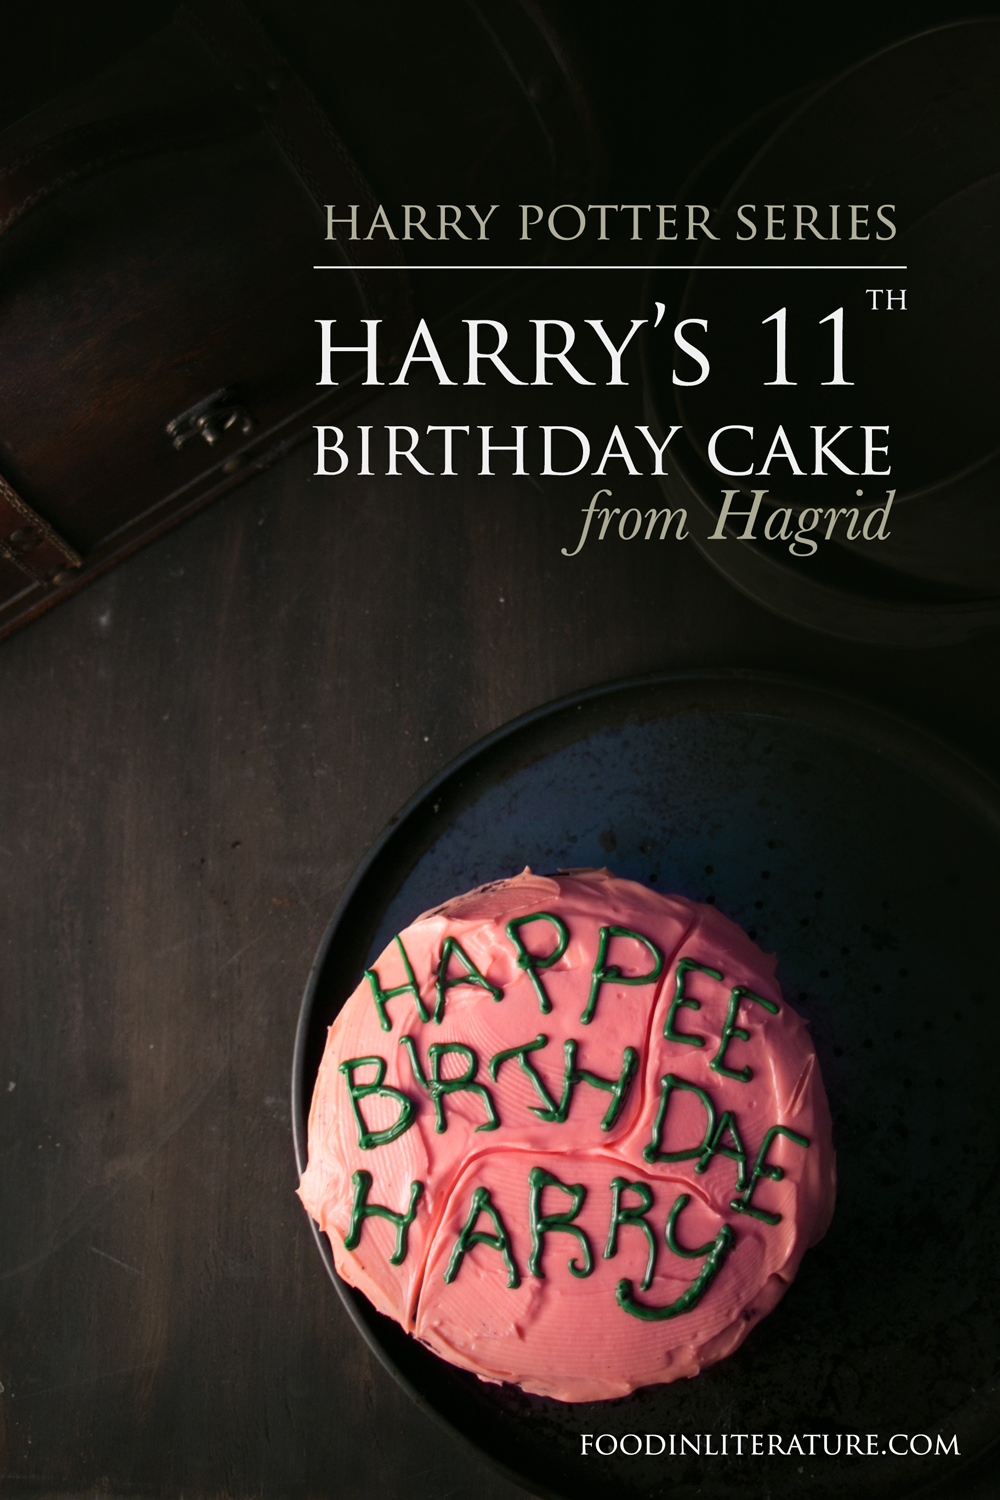 Harry Potter Birthday Cake.Harry S 11th Birthday Cake From Hagrid